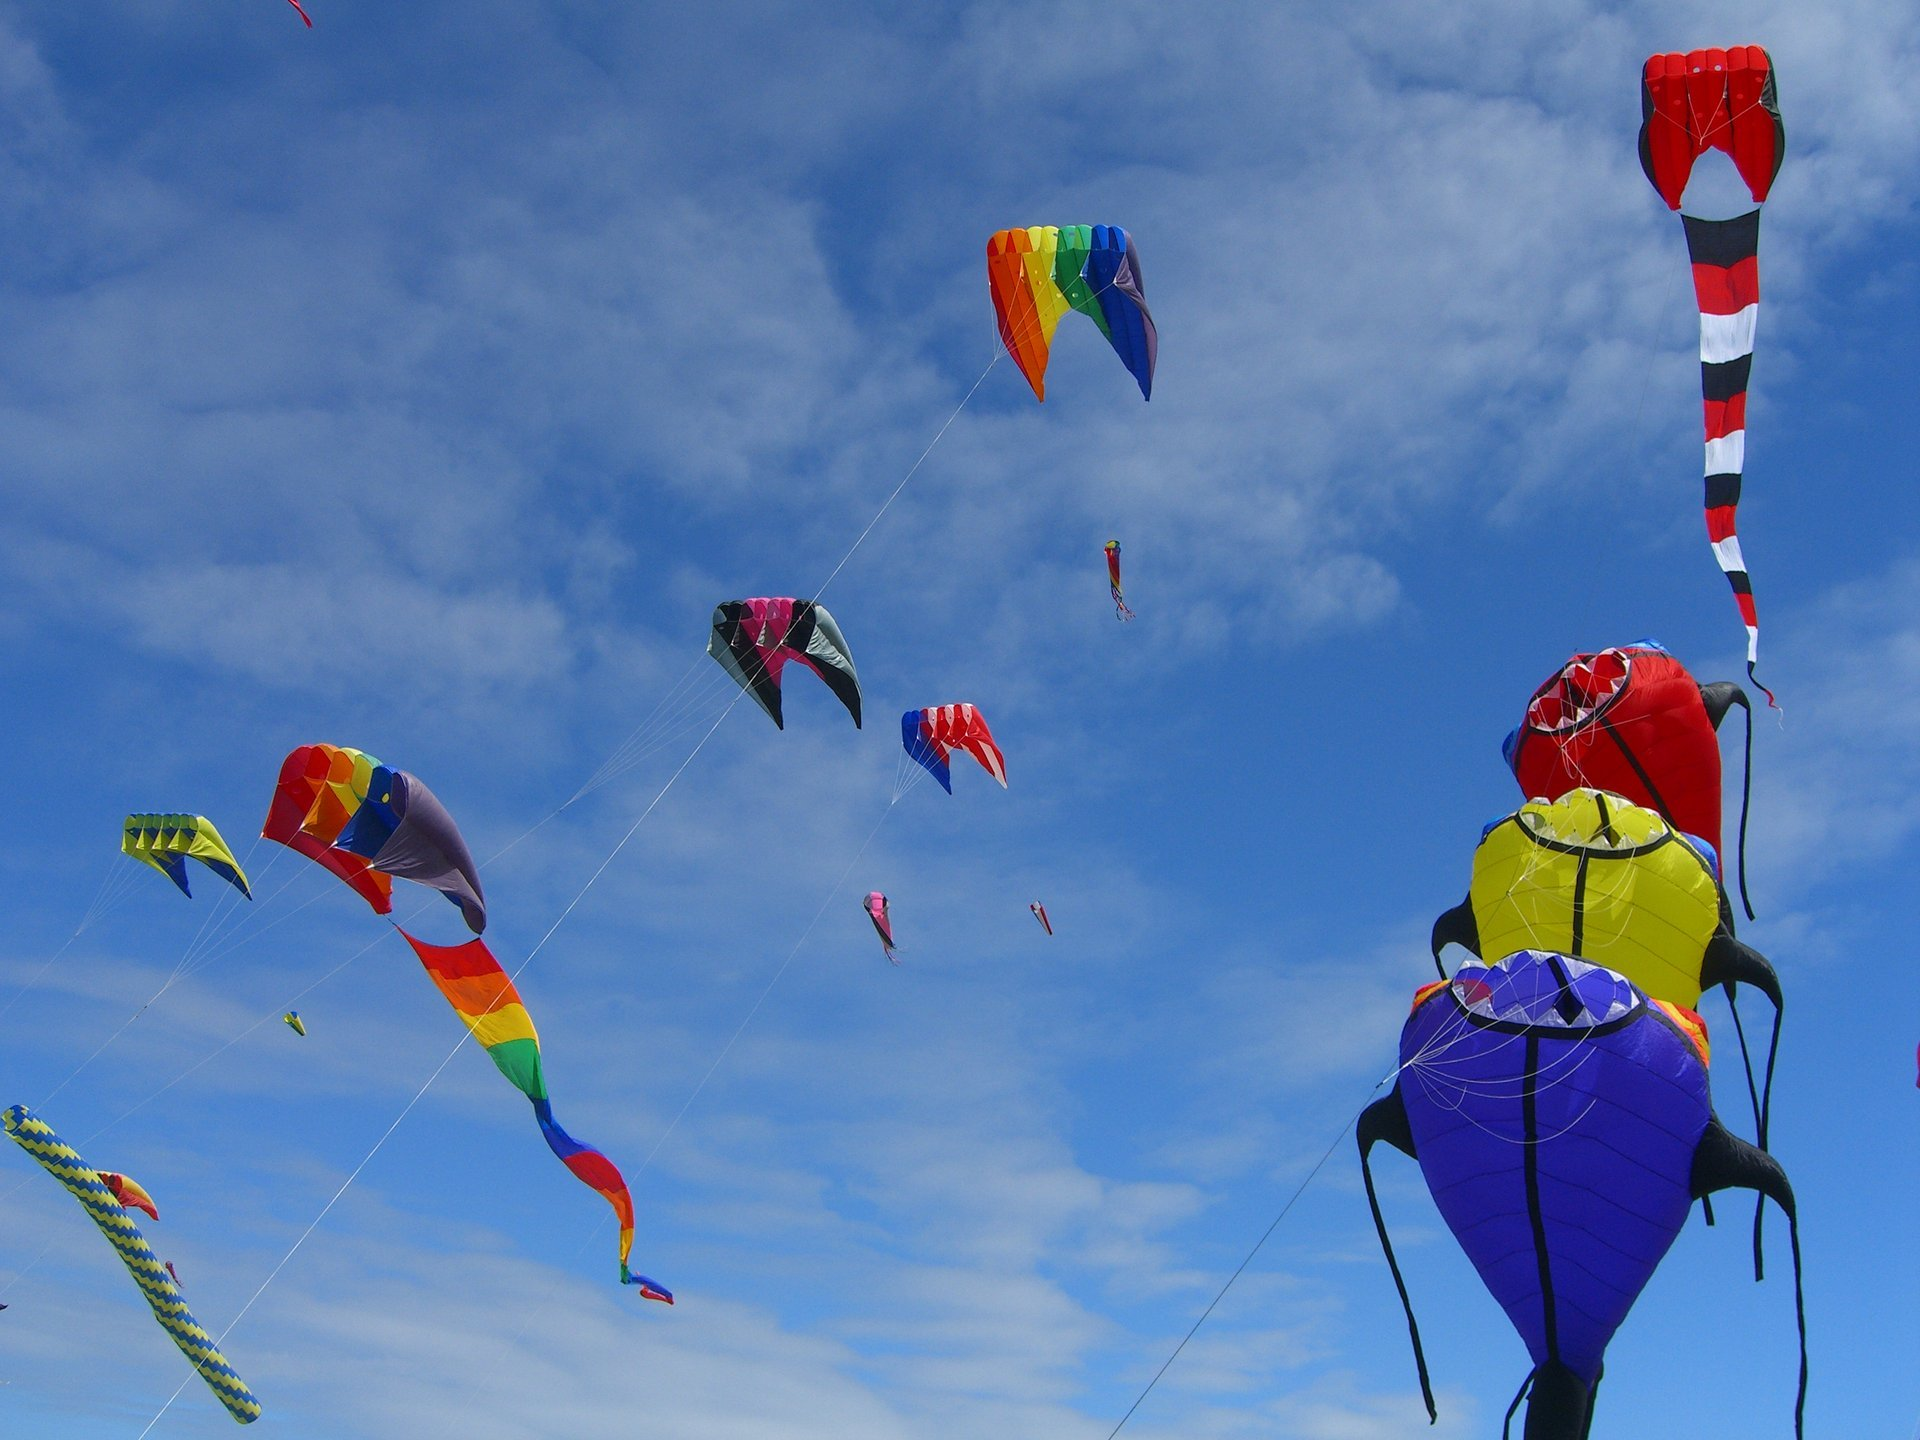 Washington State International Kite Festival in Seattle - Best Season 2020